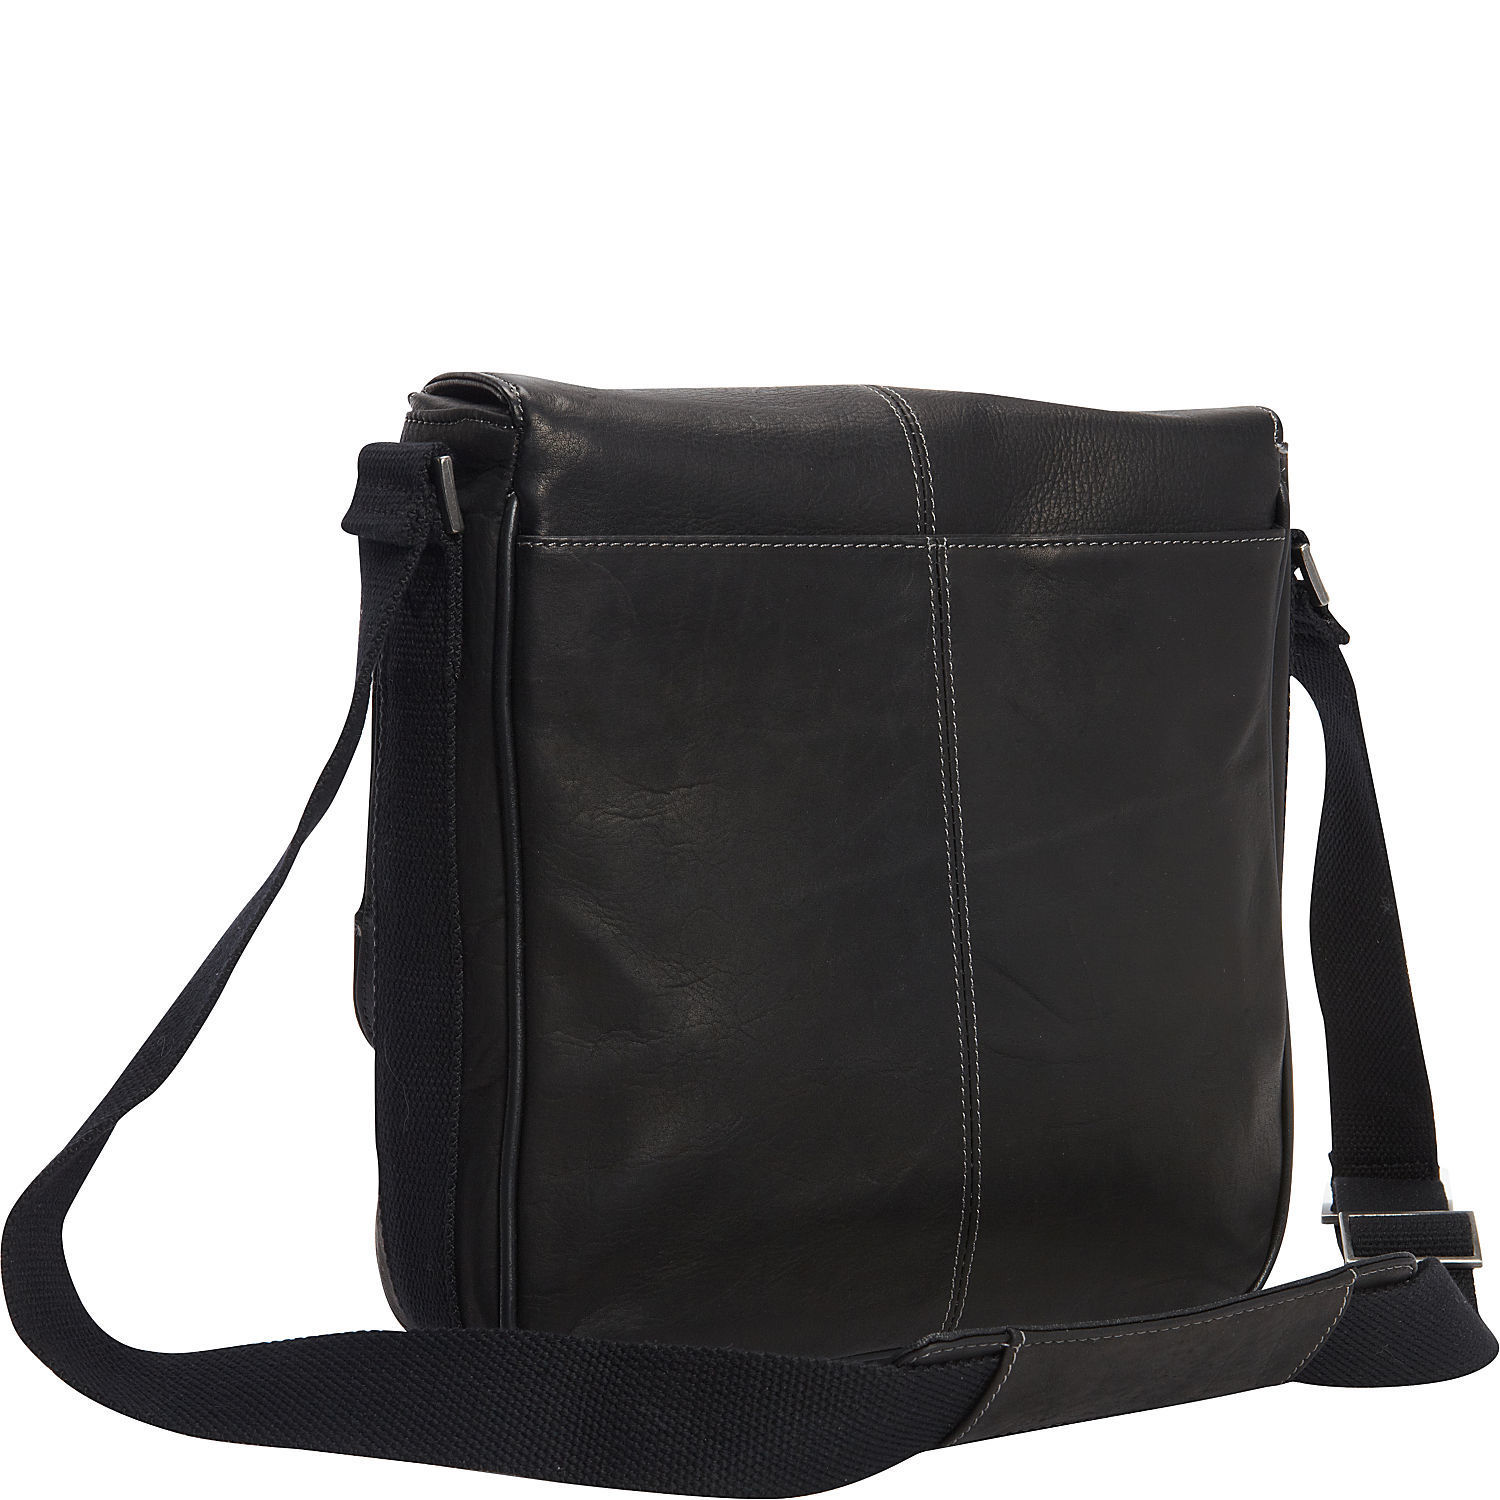 dc828e52fc Shop Kenneth Cole Reaction Colombian Leather Flapover Crossbody Tablet Bag  - Free Shipping Today - Overstock - 17006831